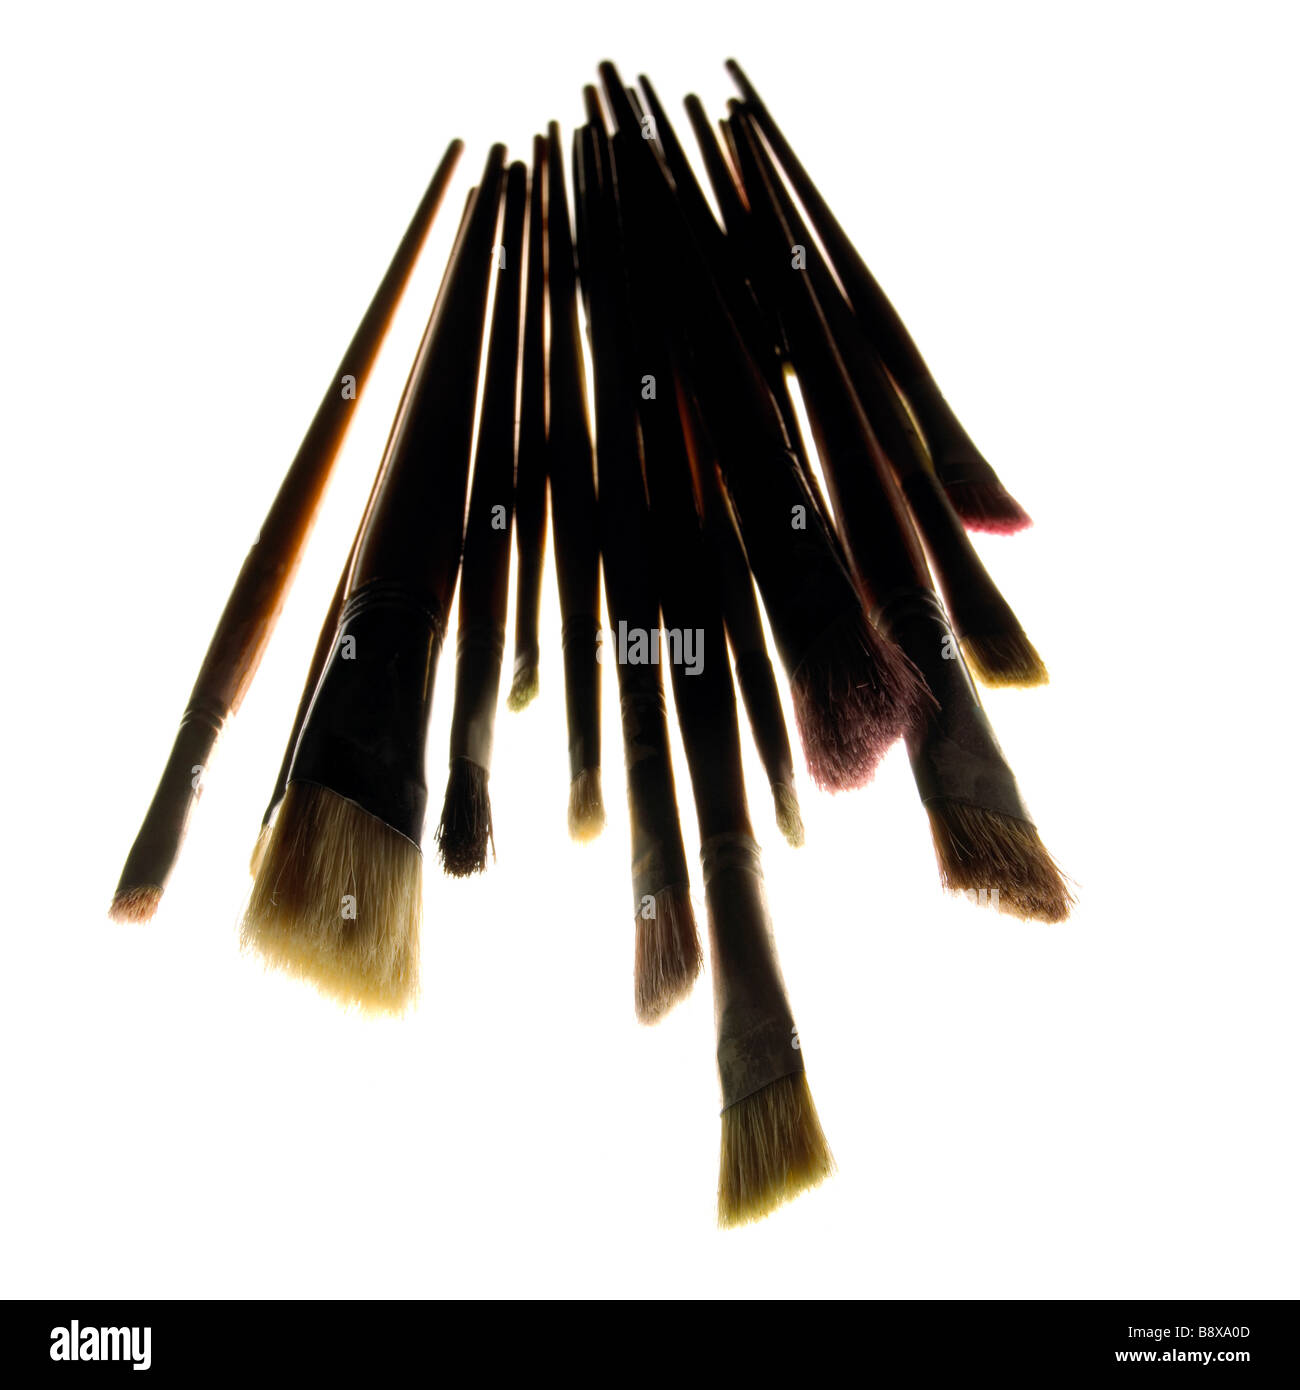 A group of used paint brushes - Stock Image